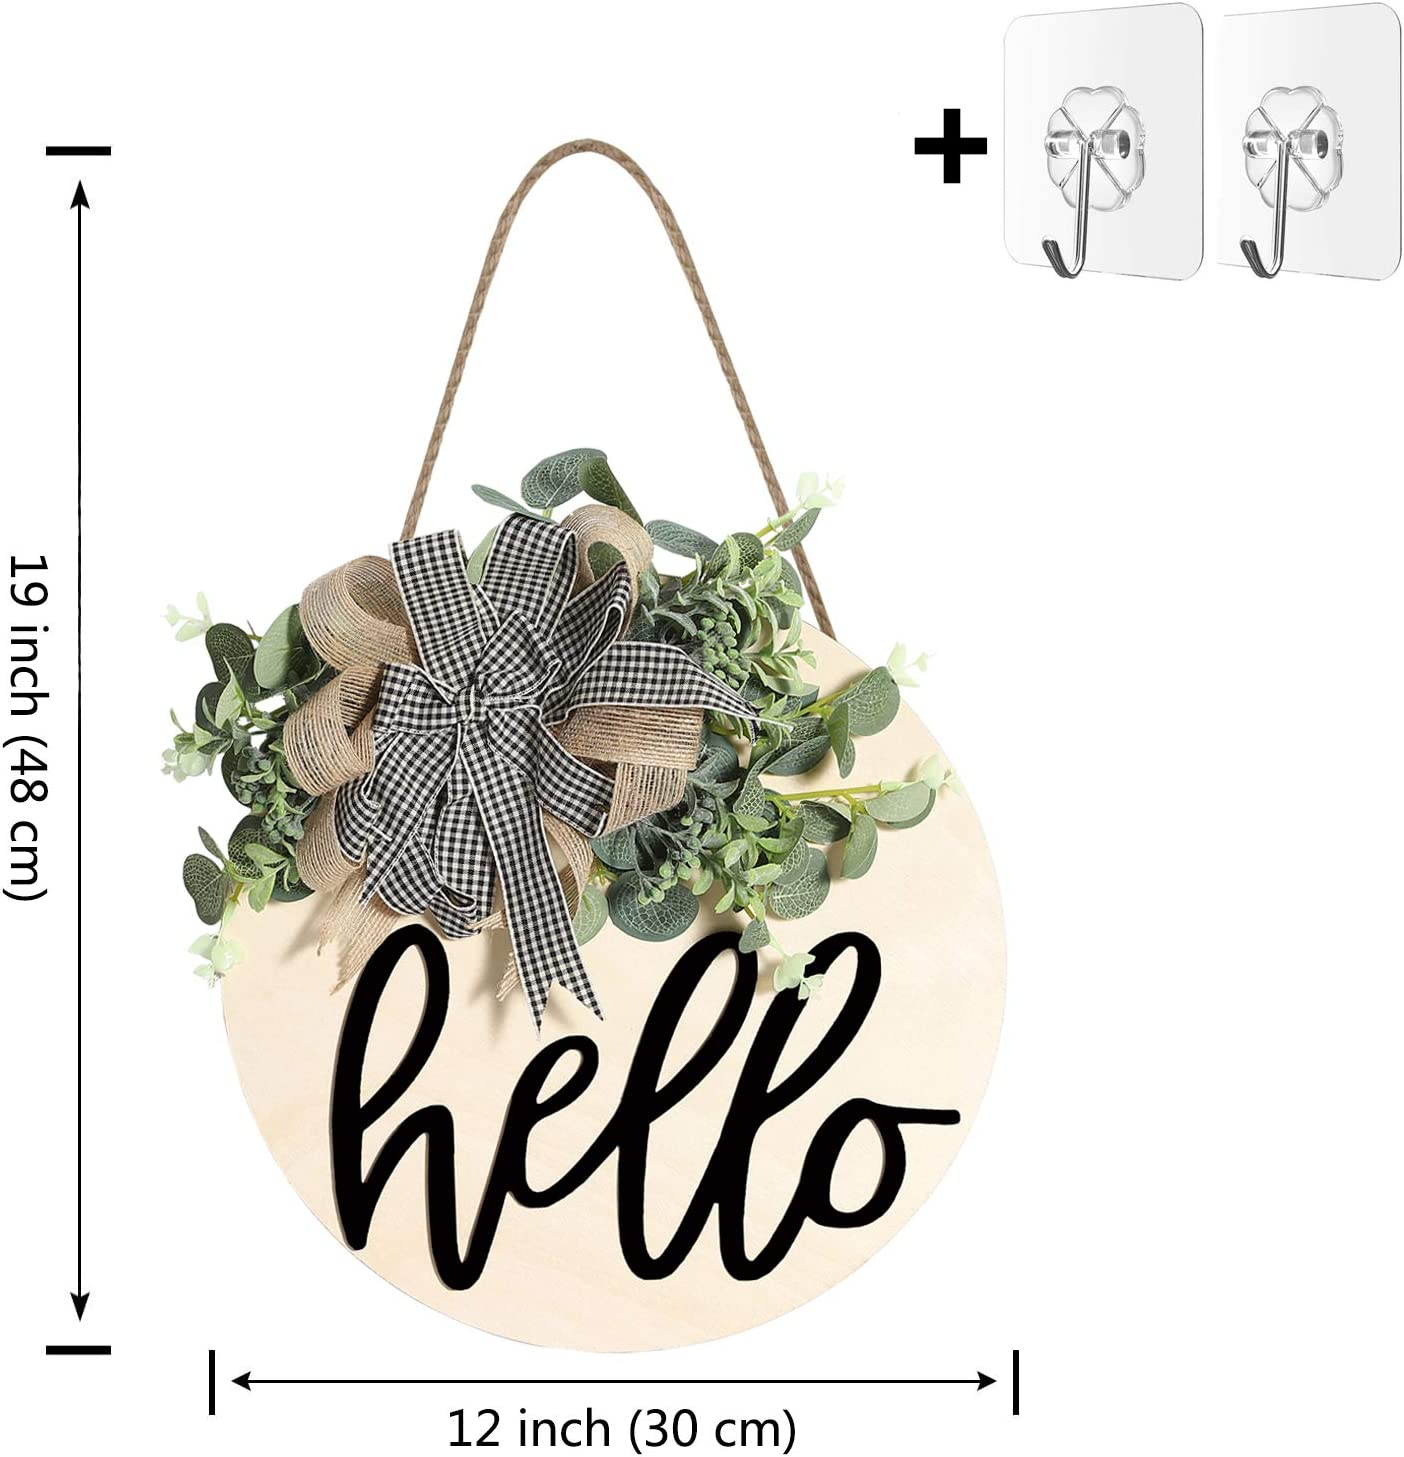 Outdoor Welcome Sign Wooden Hanging Sign for Front Porch Wreaths for Front Door Decorations for Christmas,Restaurant Home